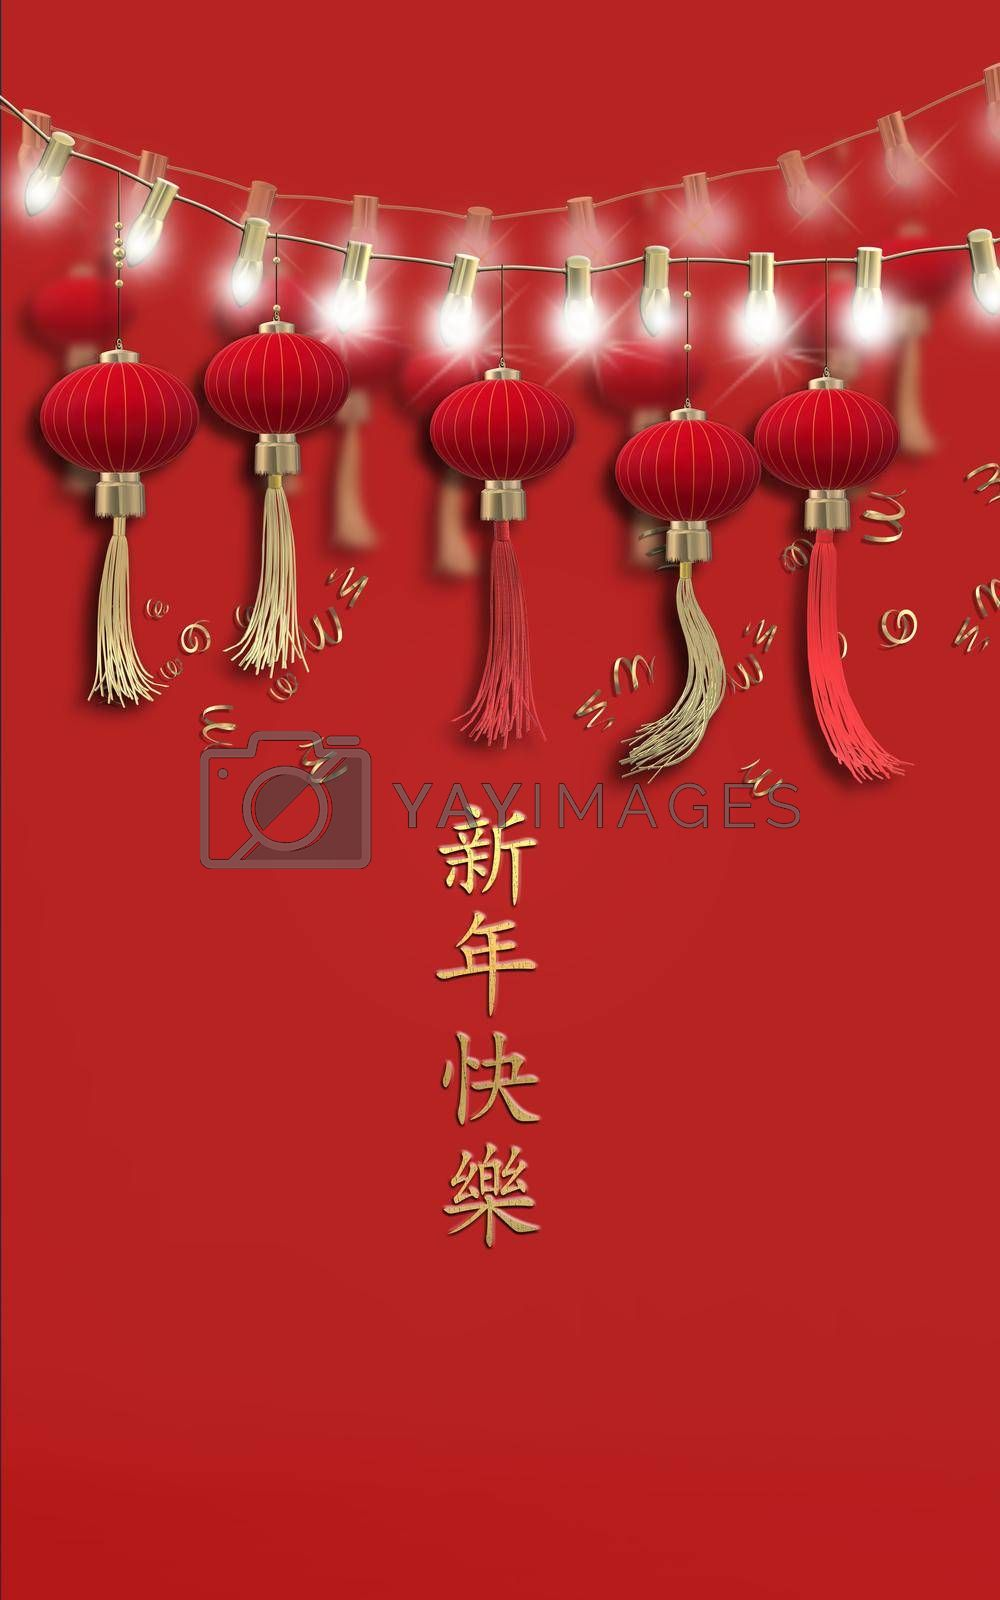 Red gold traditional Chinese lanterns on string of lights on red background. Template for Chinese festival celebration. Text Happy Chinese new year, 3D rendering illustration